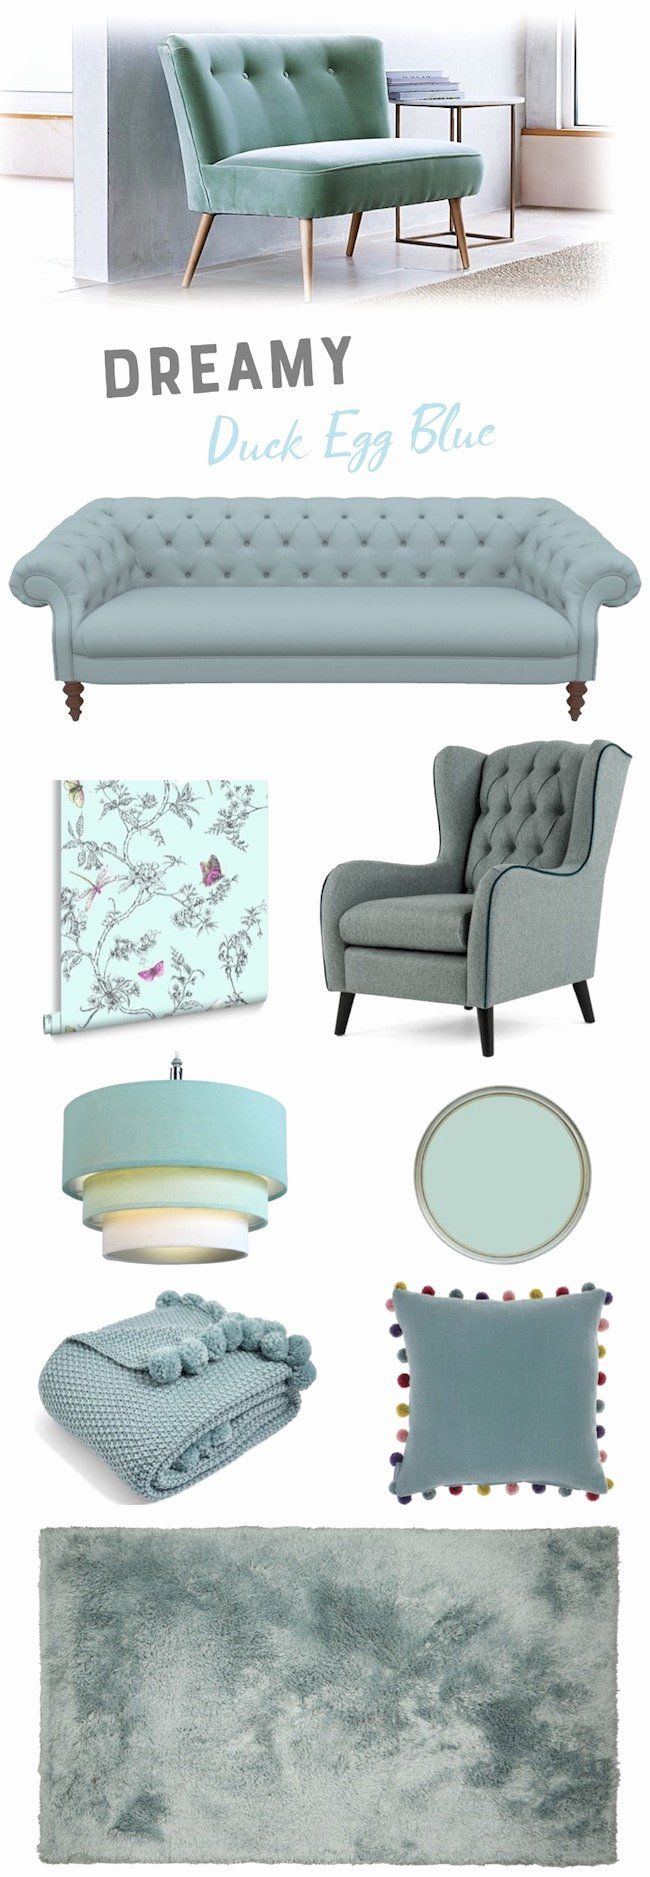 30 Duck Egg Blue Living Room Idea in 2020 | Duck egg blue ...